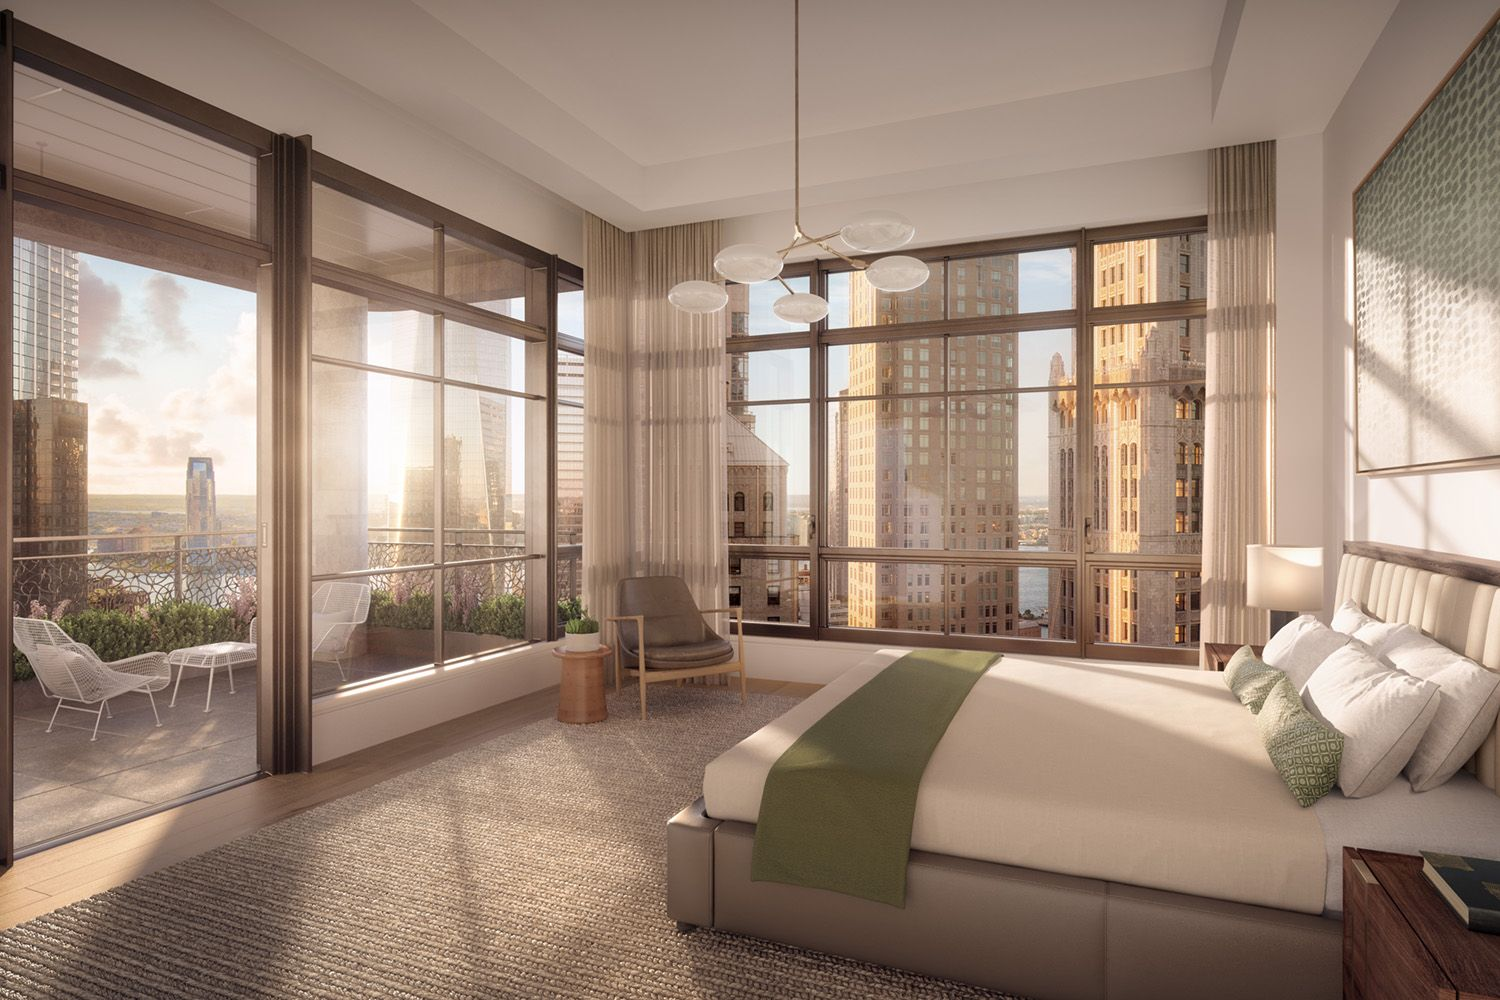 Sales Launch For COOKFOX's 25 Park Row in Financial